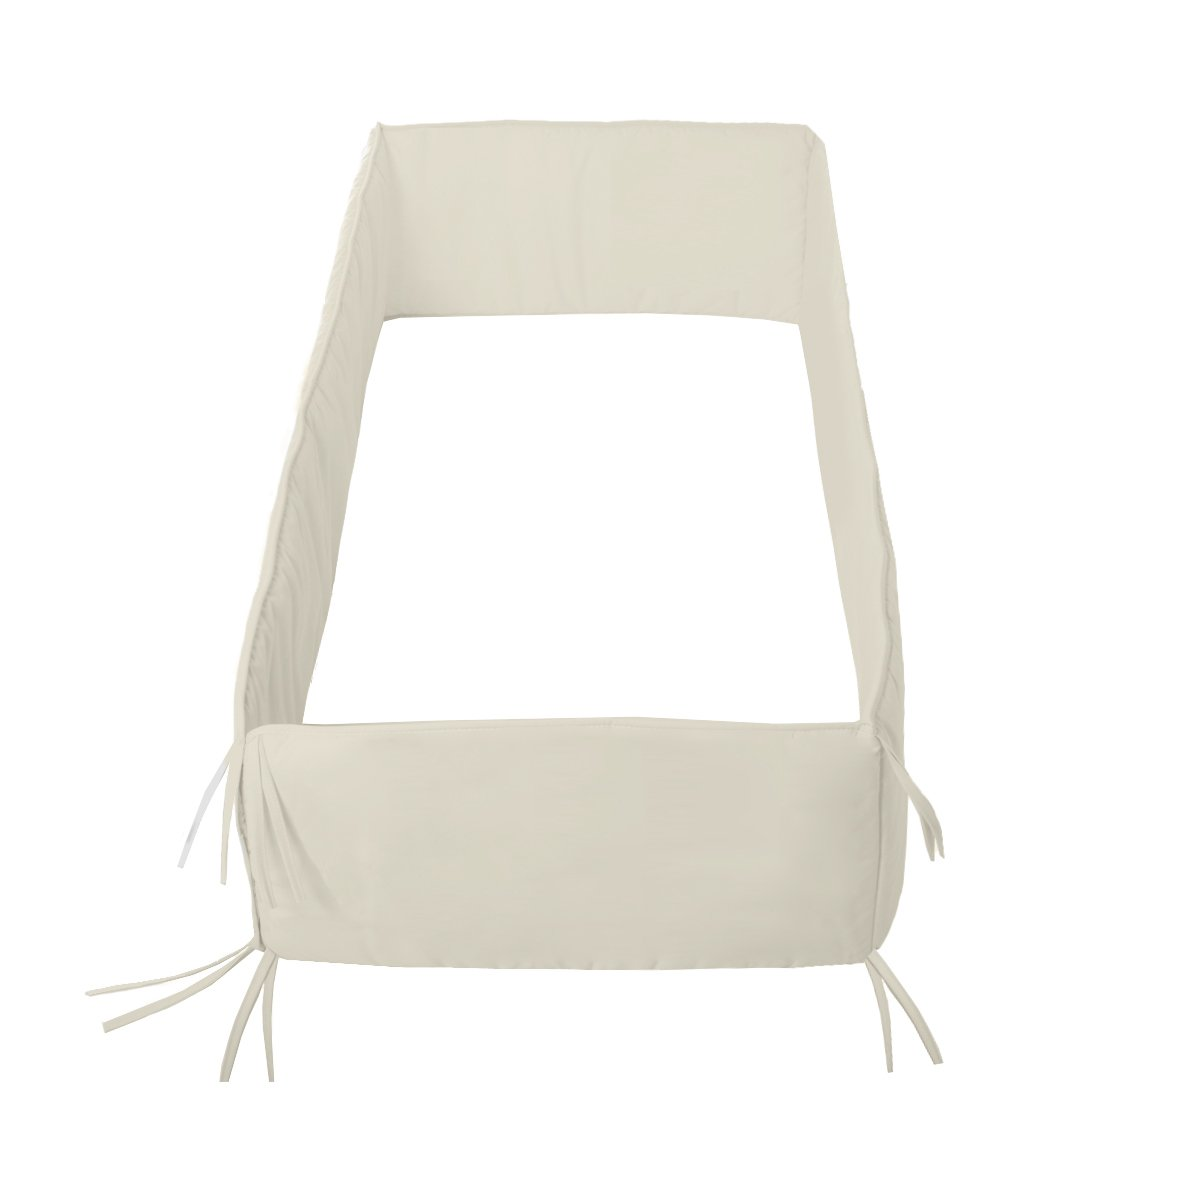 Cambrass Liso E - Protector de cuna 360, color beige product image